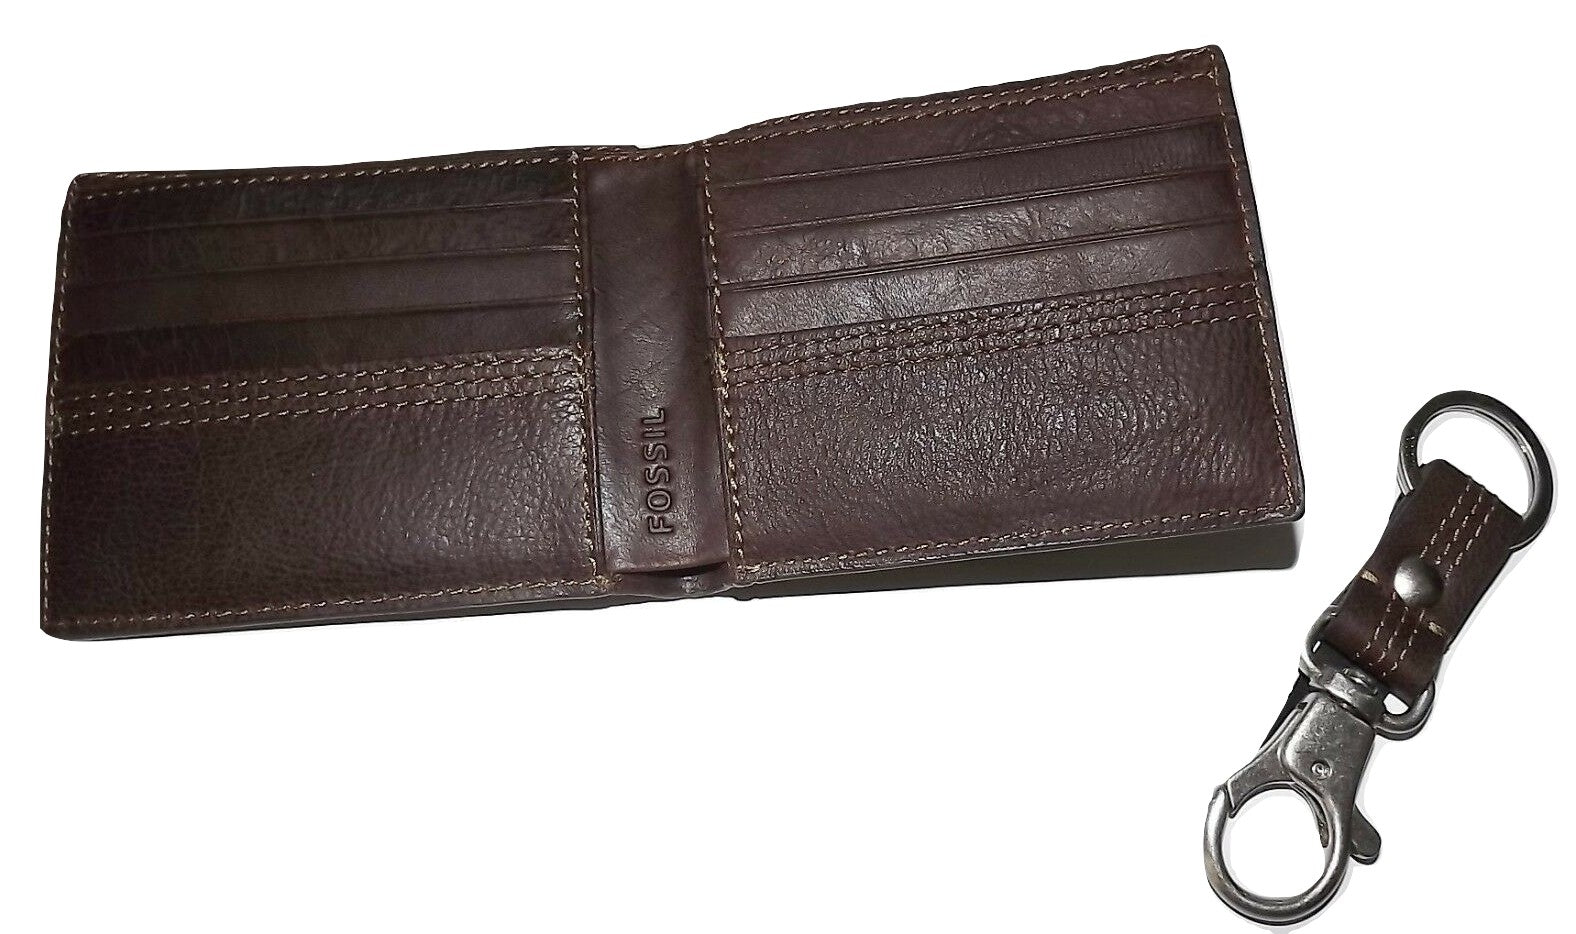 NEW SCULLY LEATHER RFID PROTECTED ZIP CREDIT CARD CASE WALLET WITH KEY FOB BLACK